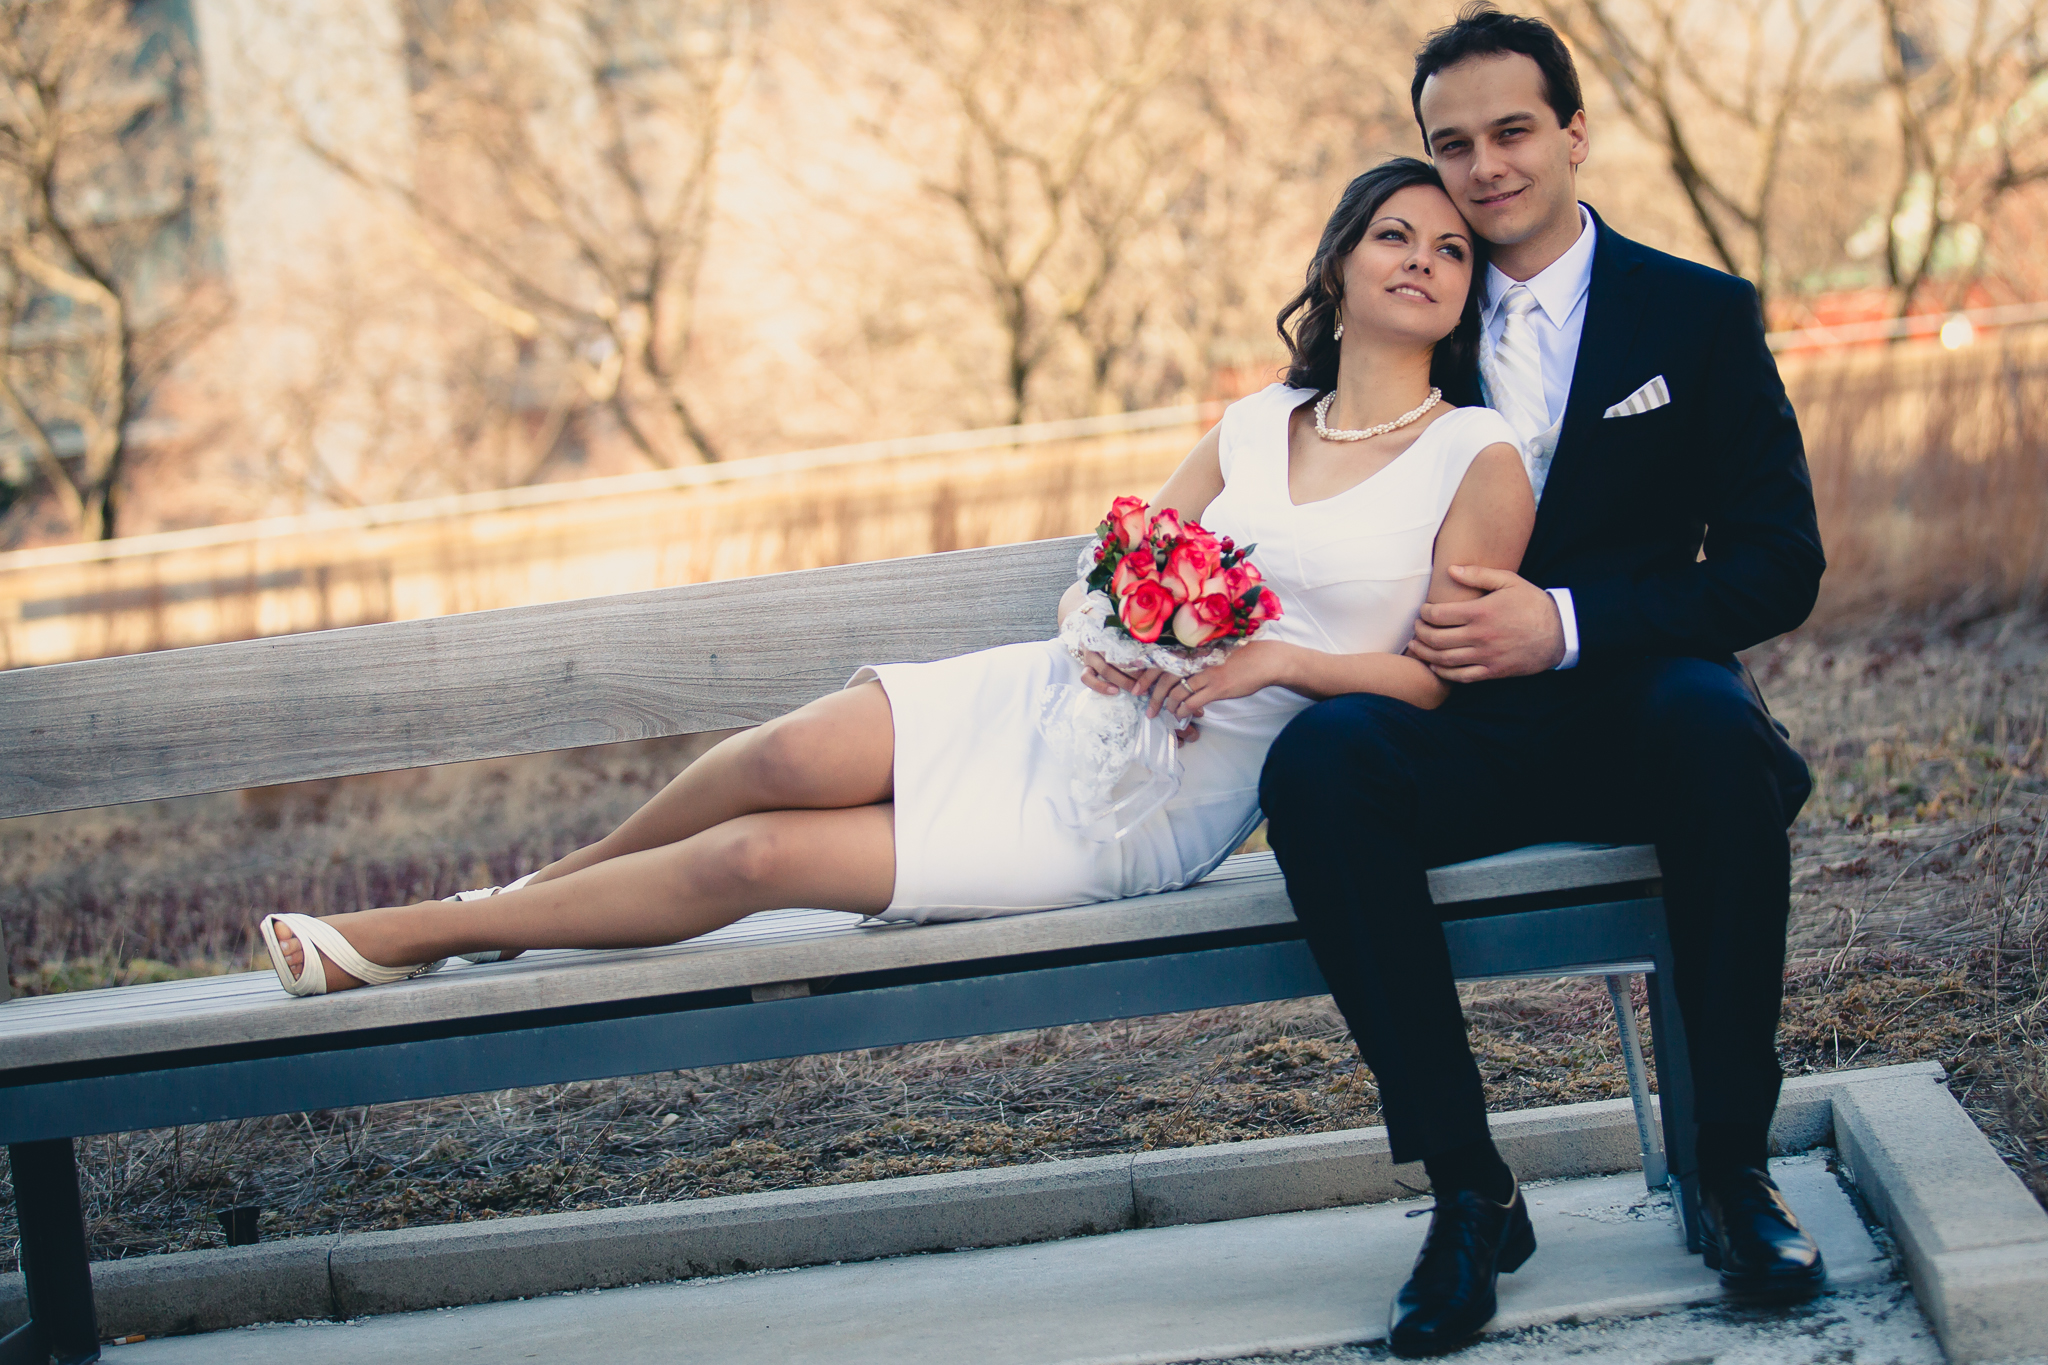 Toronto Wedding Photography - Zoya & Alexei -2.jpg